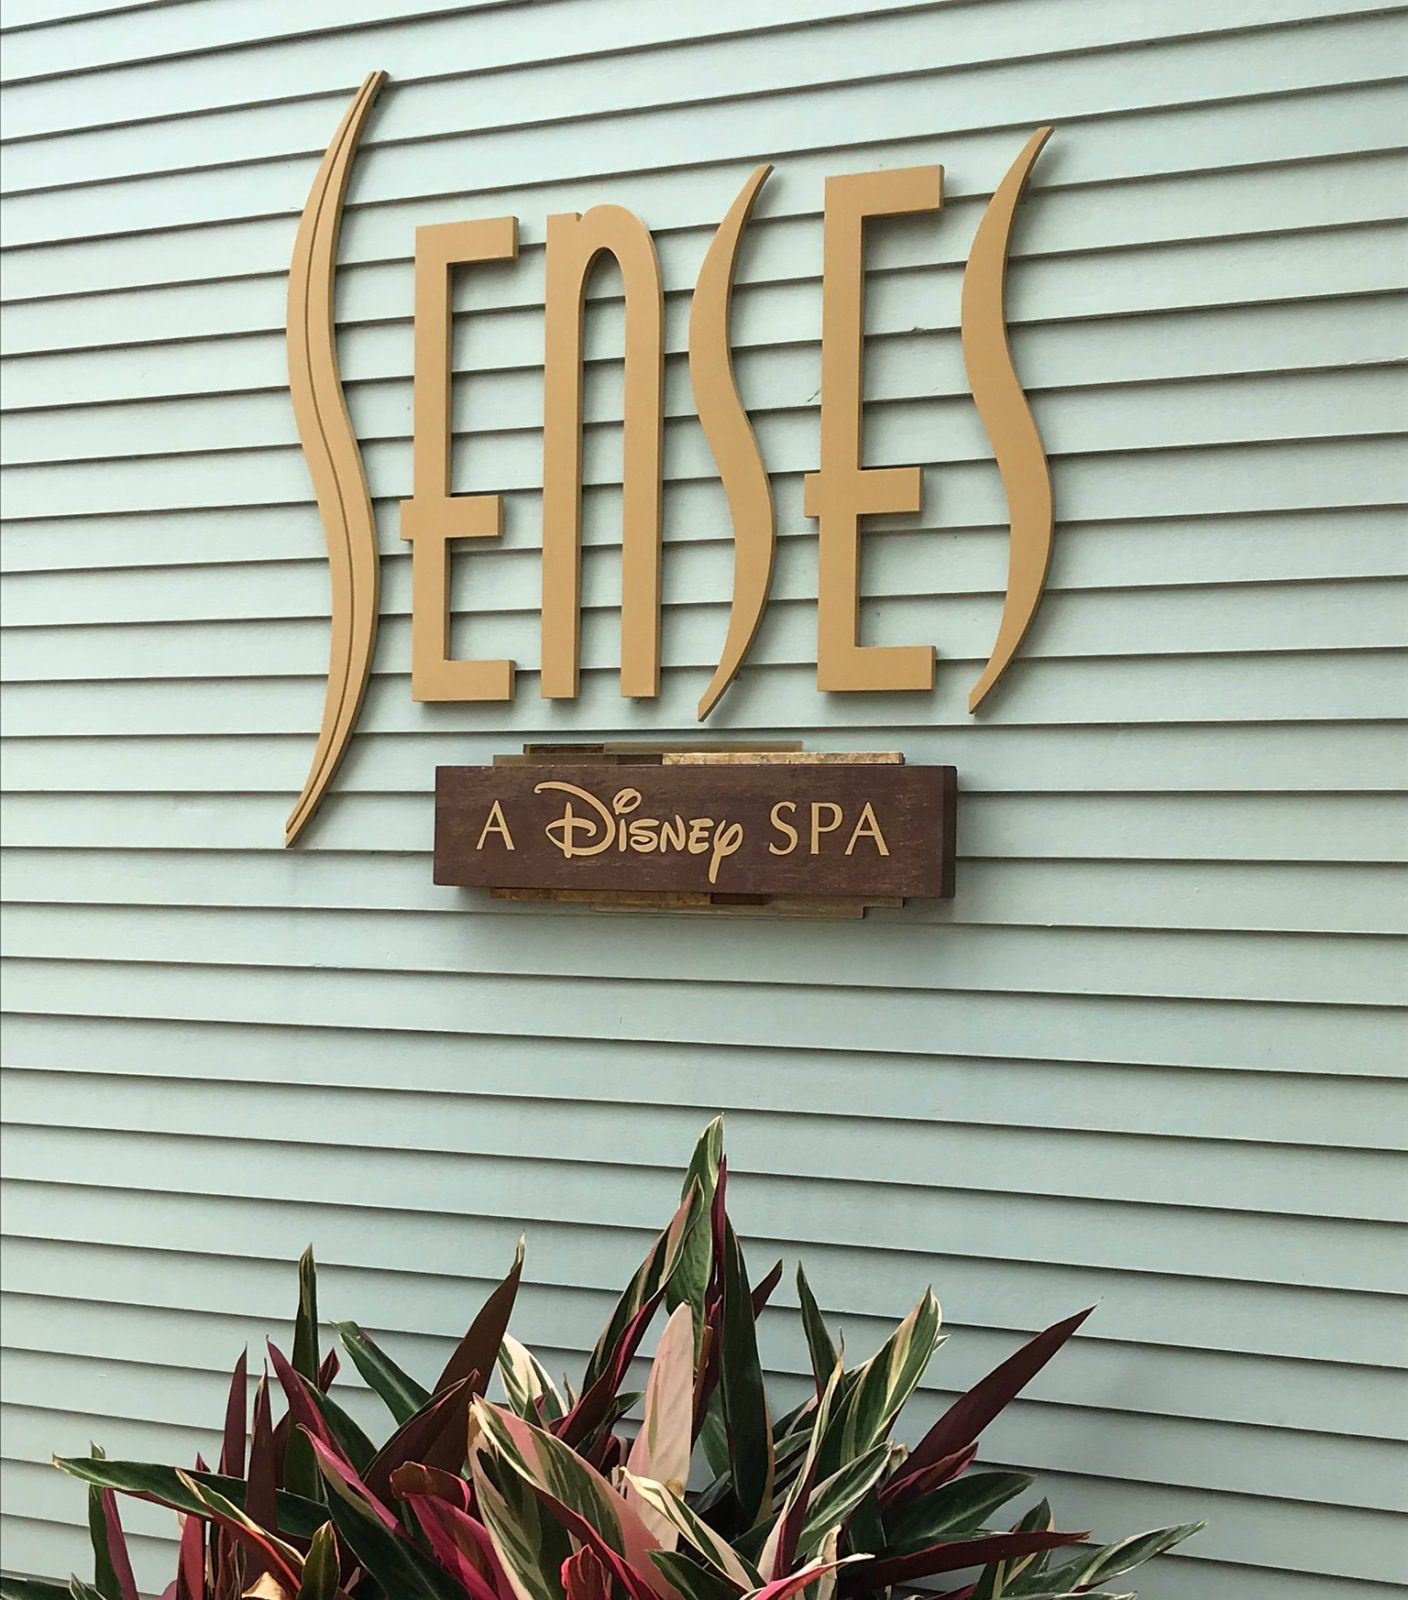 Senses disney spa sign